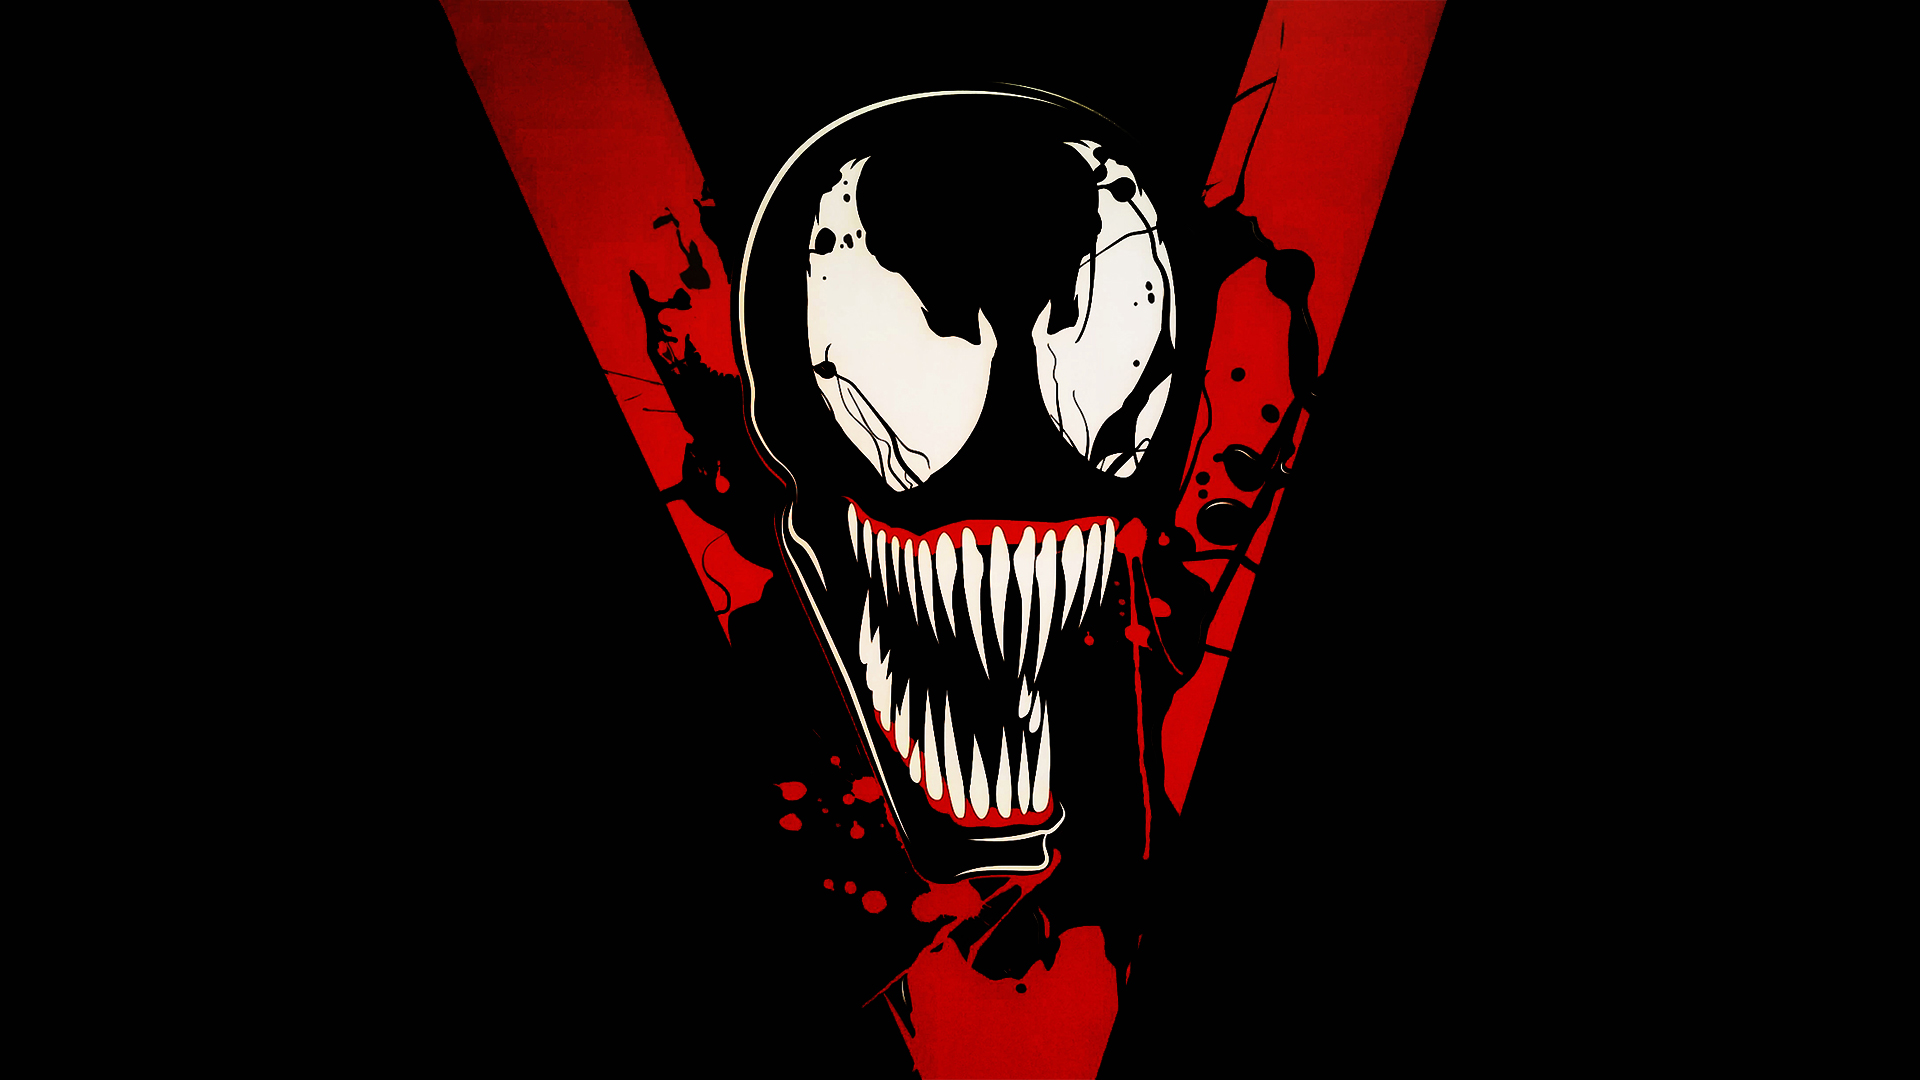 Venom 2018 Movie Hd Movies 4k Wallpapers Images Backgrounds